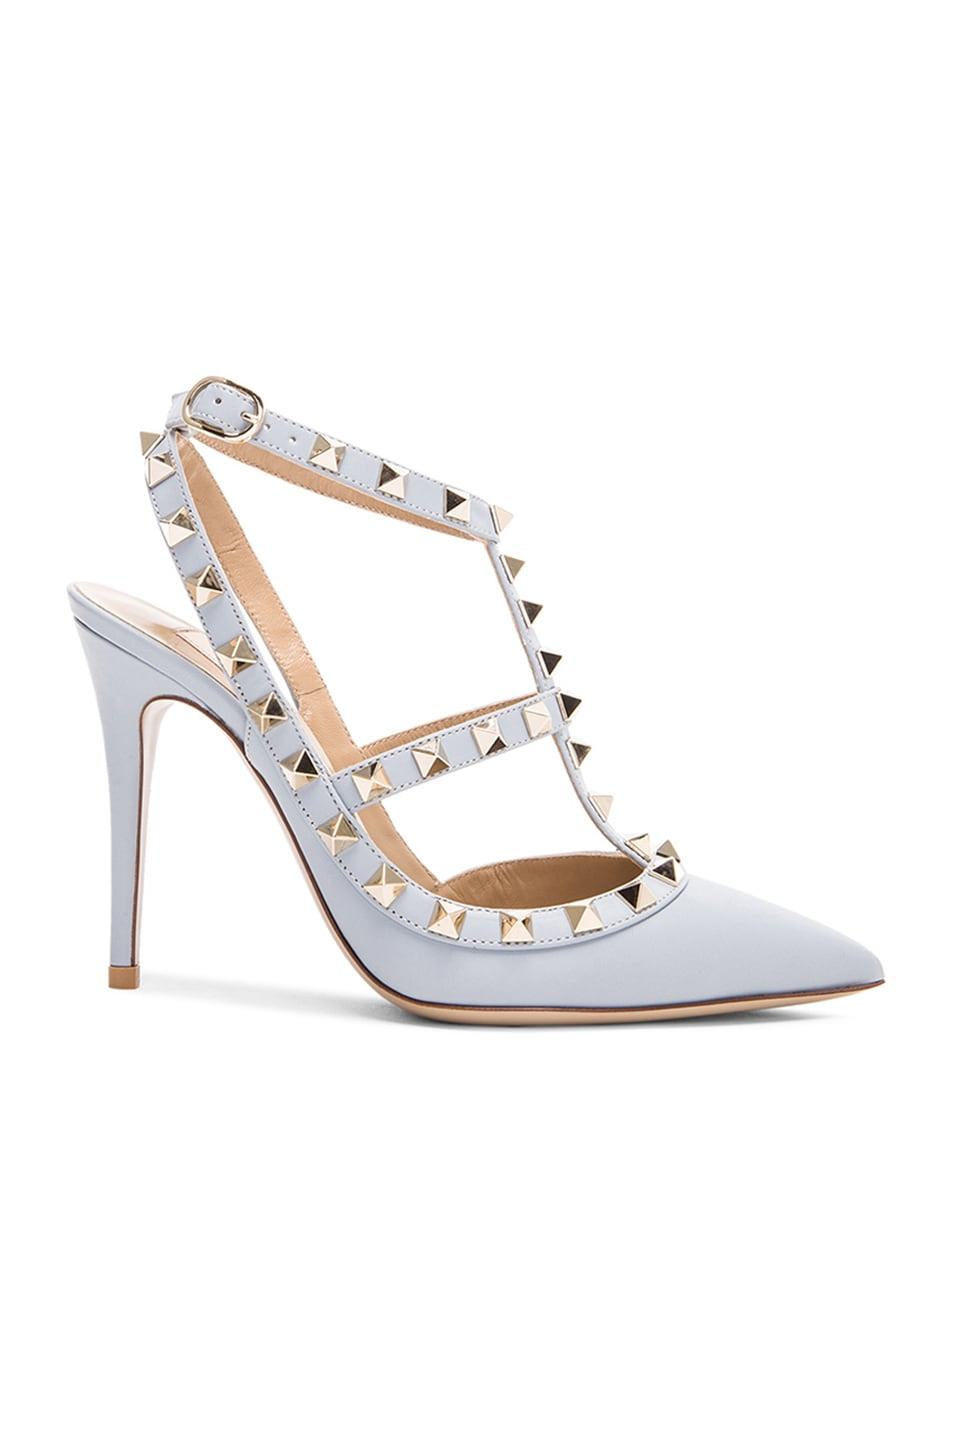 Image 1 of Valentino Rockstud Leather Slingbacks T.100 in Water Sky